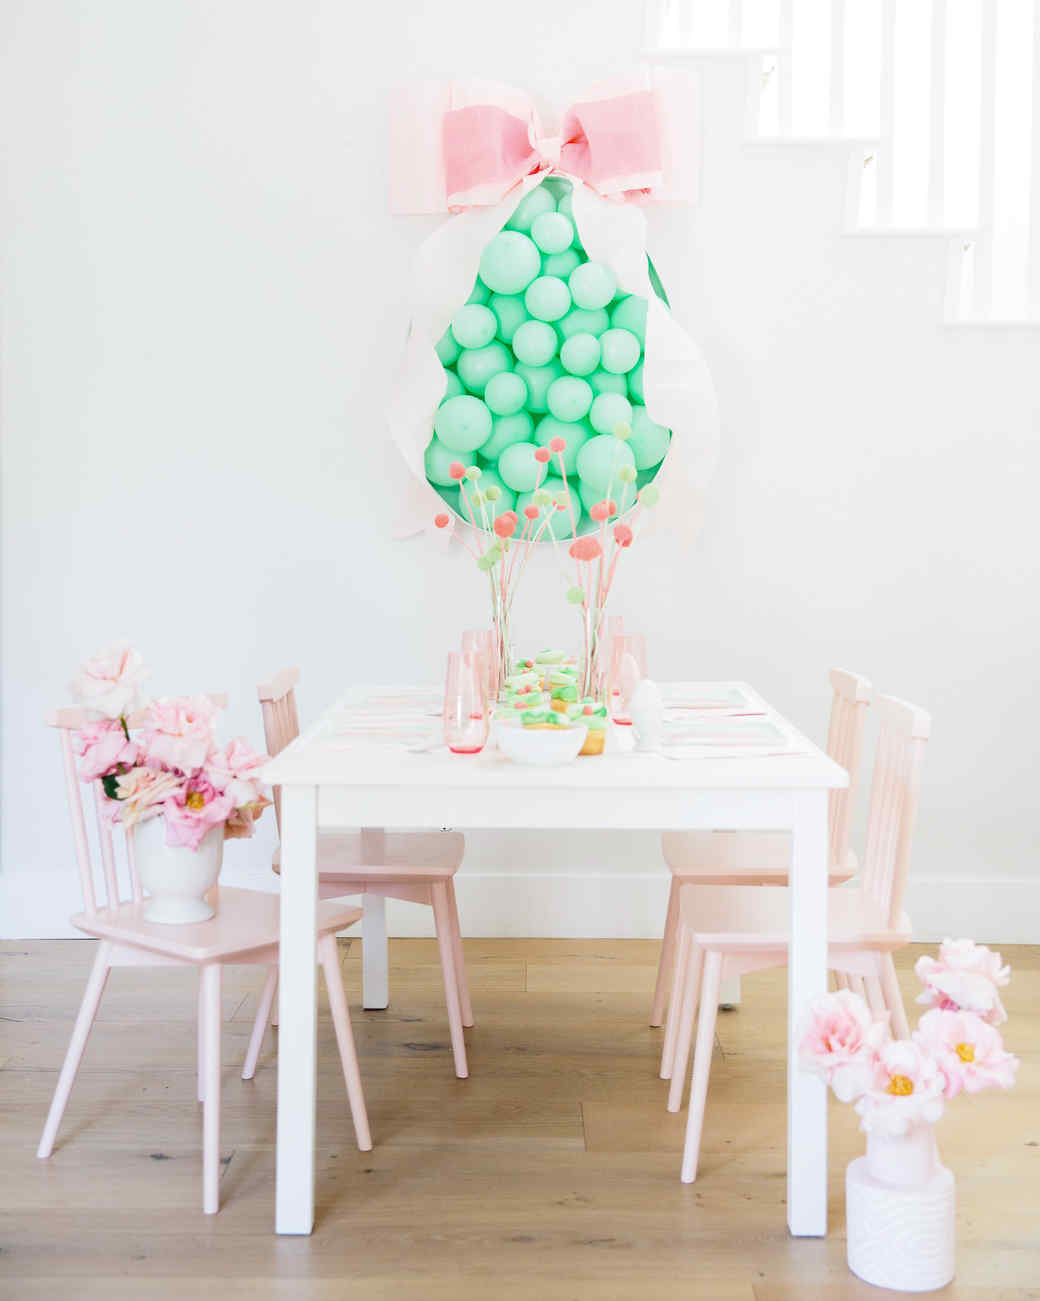 Green Easter Egg Balloon With Pink Decor On Table